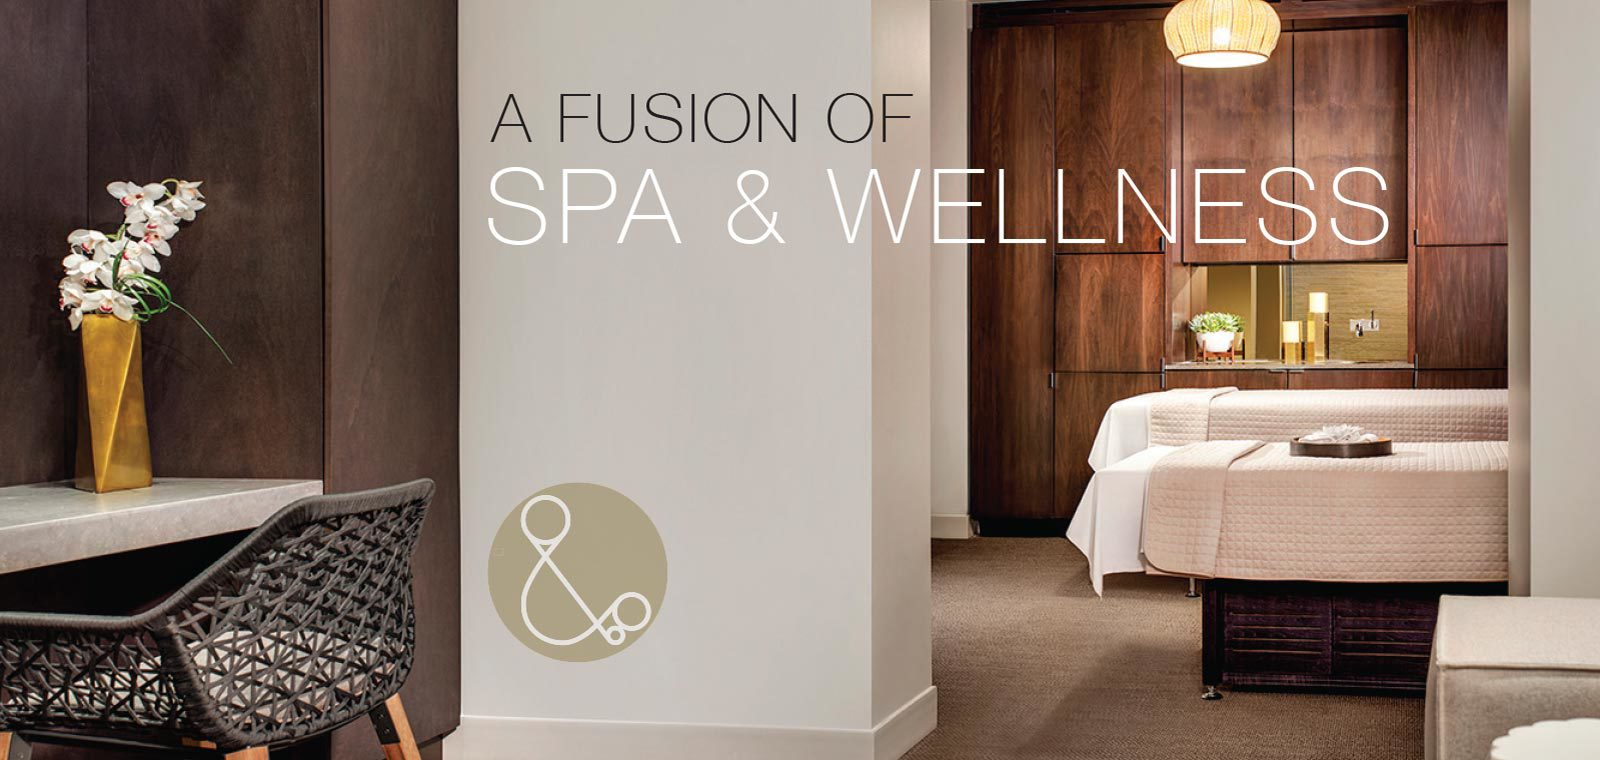 A fusion of spa & wellness